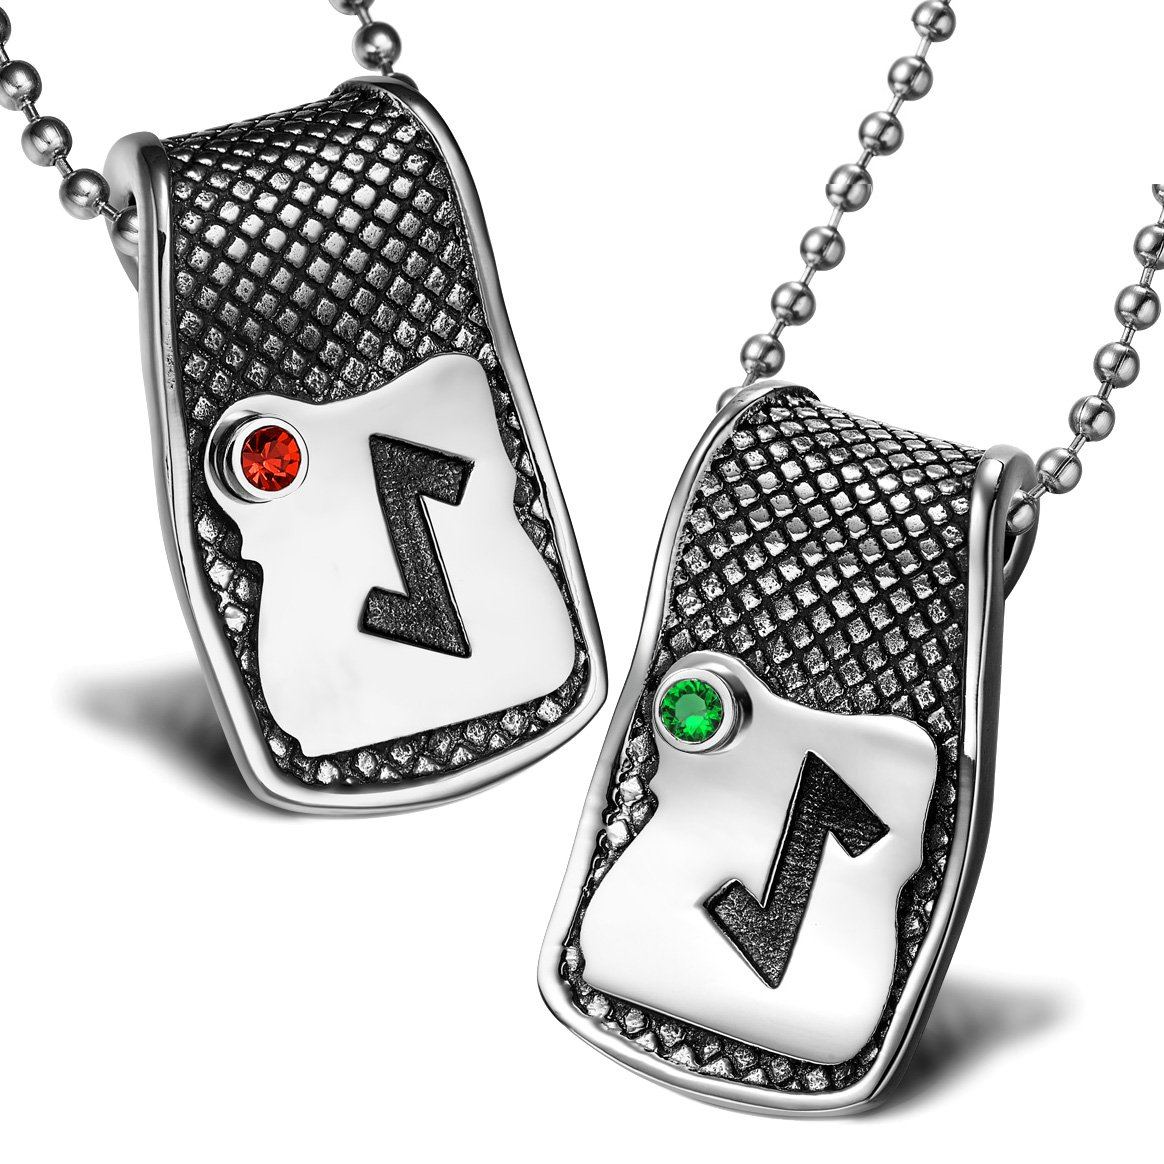 Unique Rune Eihwaz Defense Powers Love Couples or Best Friends Amulets Set Red Green Crystals Necklaces